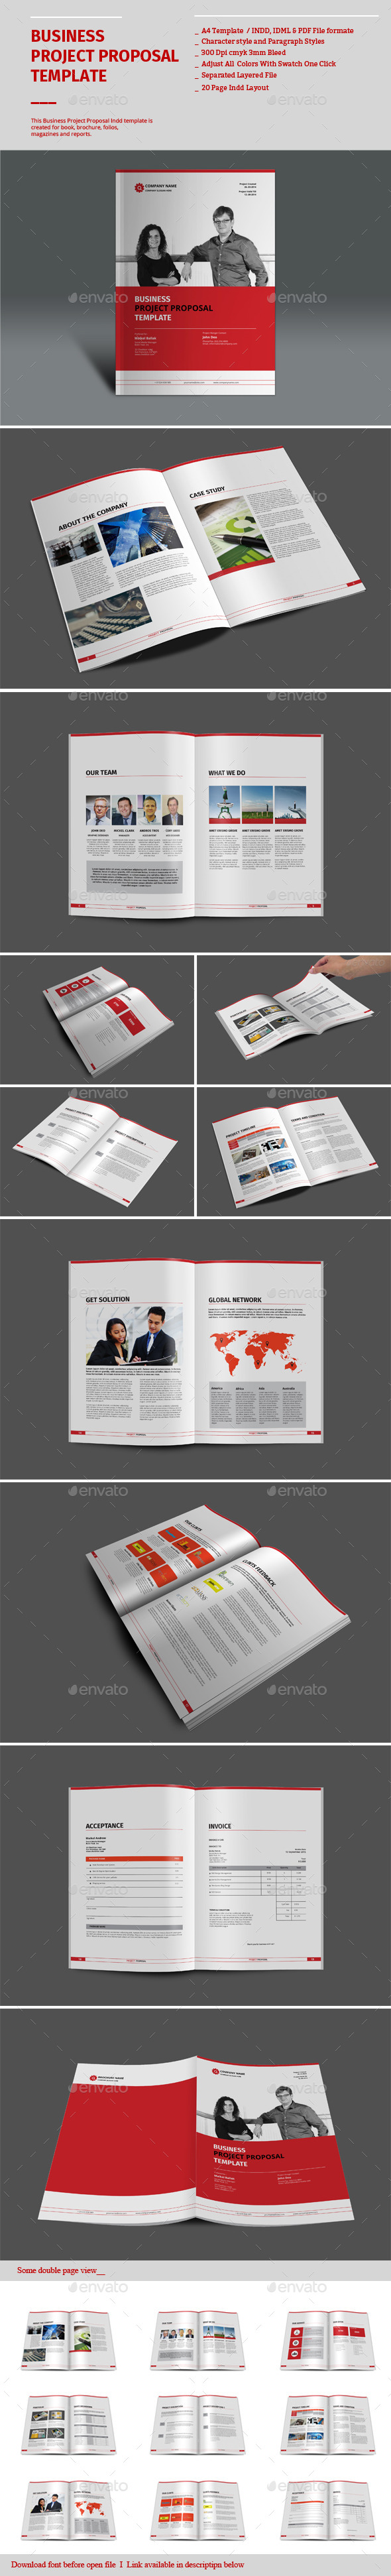 Business Project Proposal Templates - Proposals & Invoices Stationery